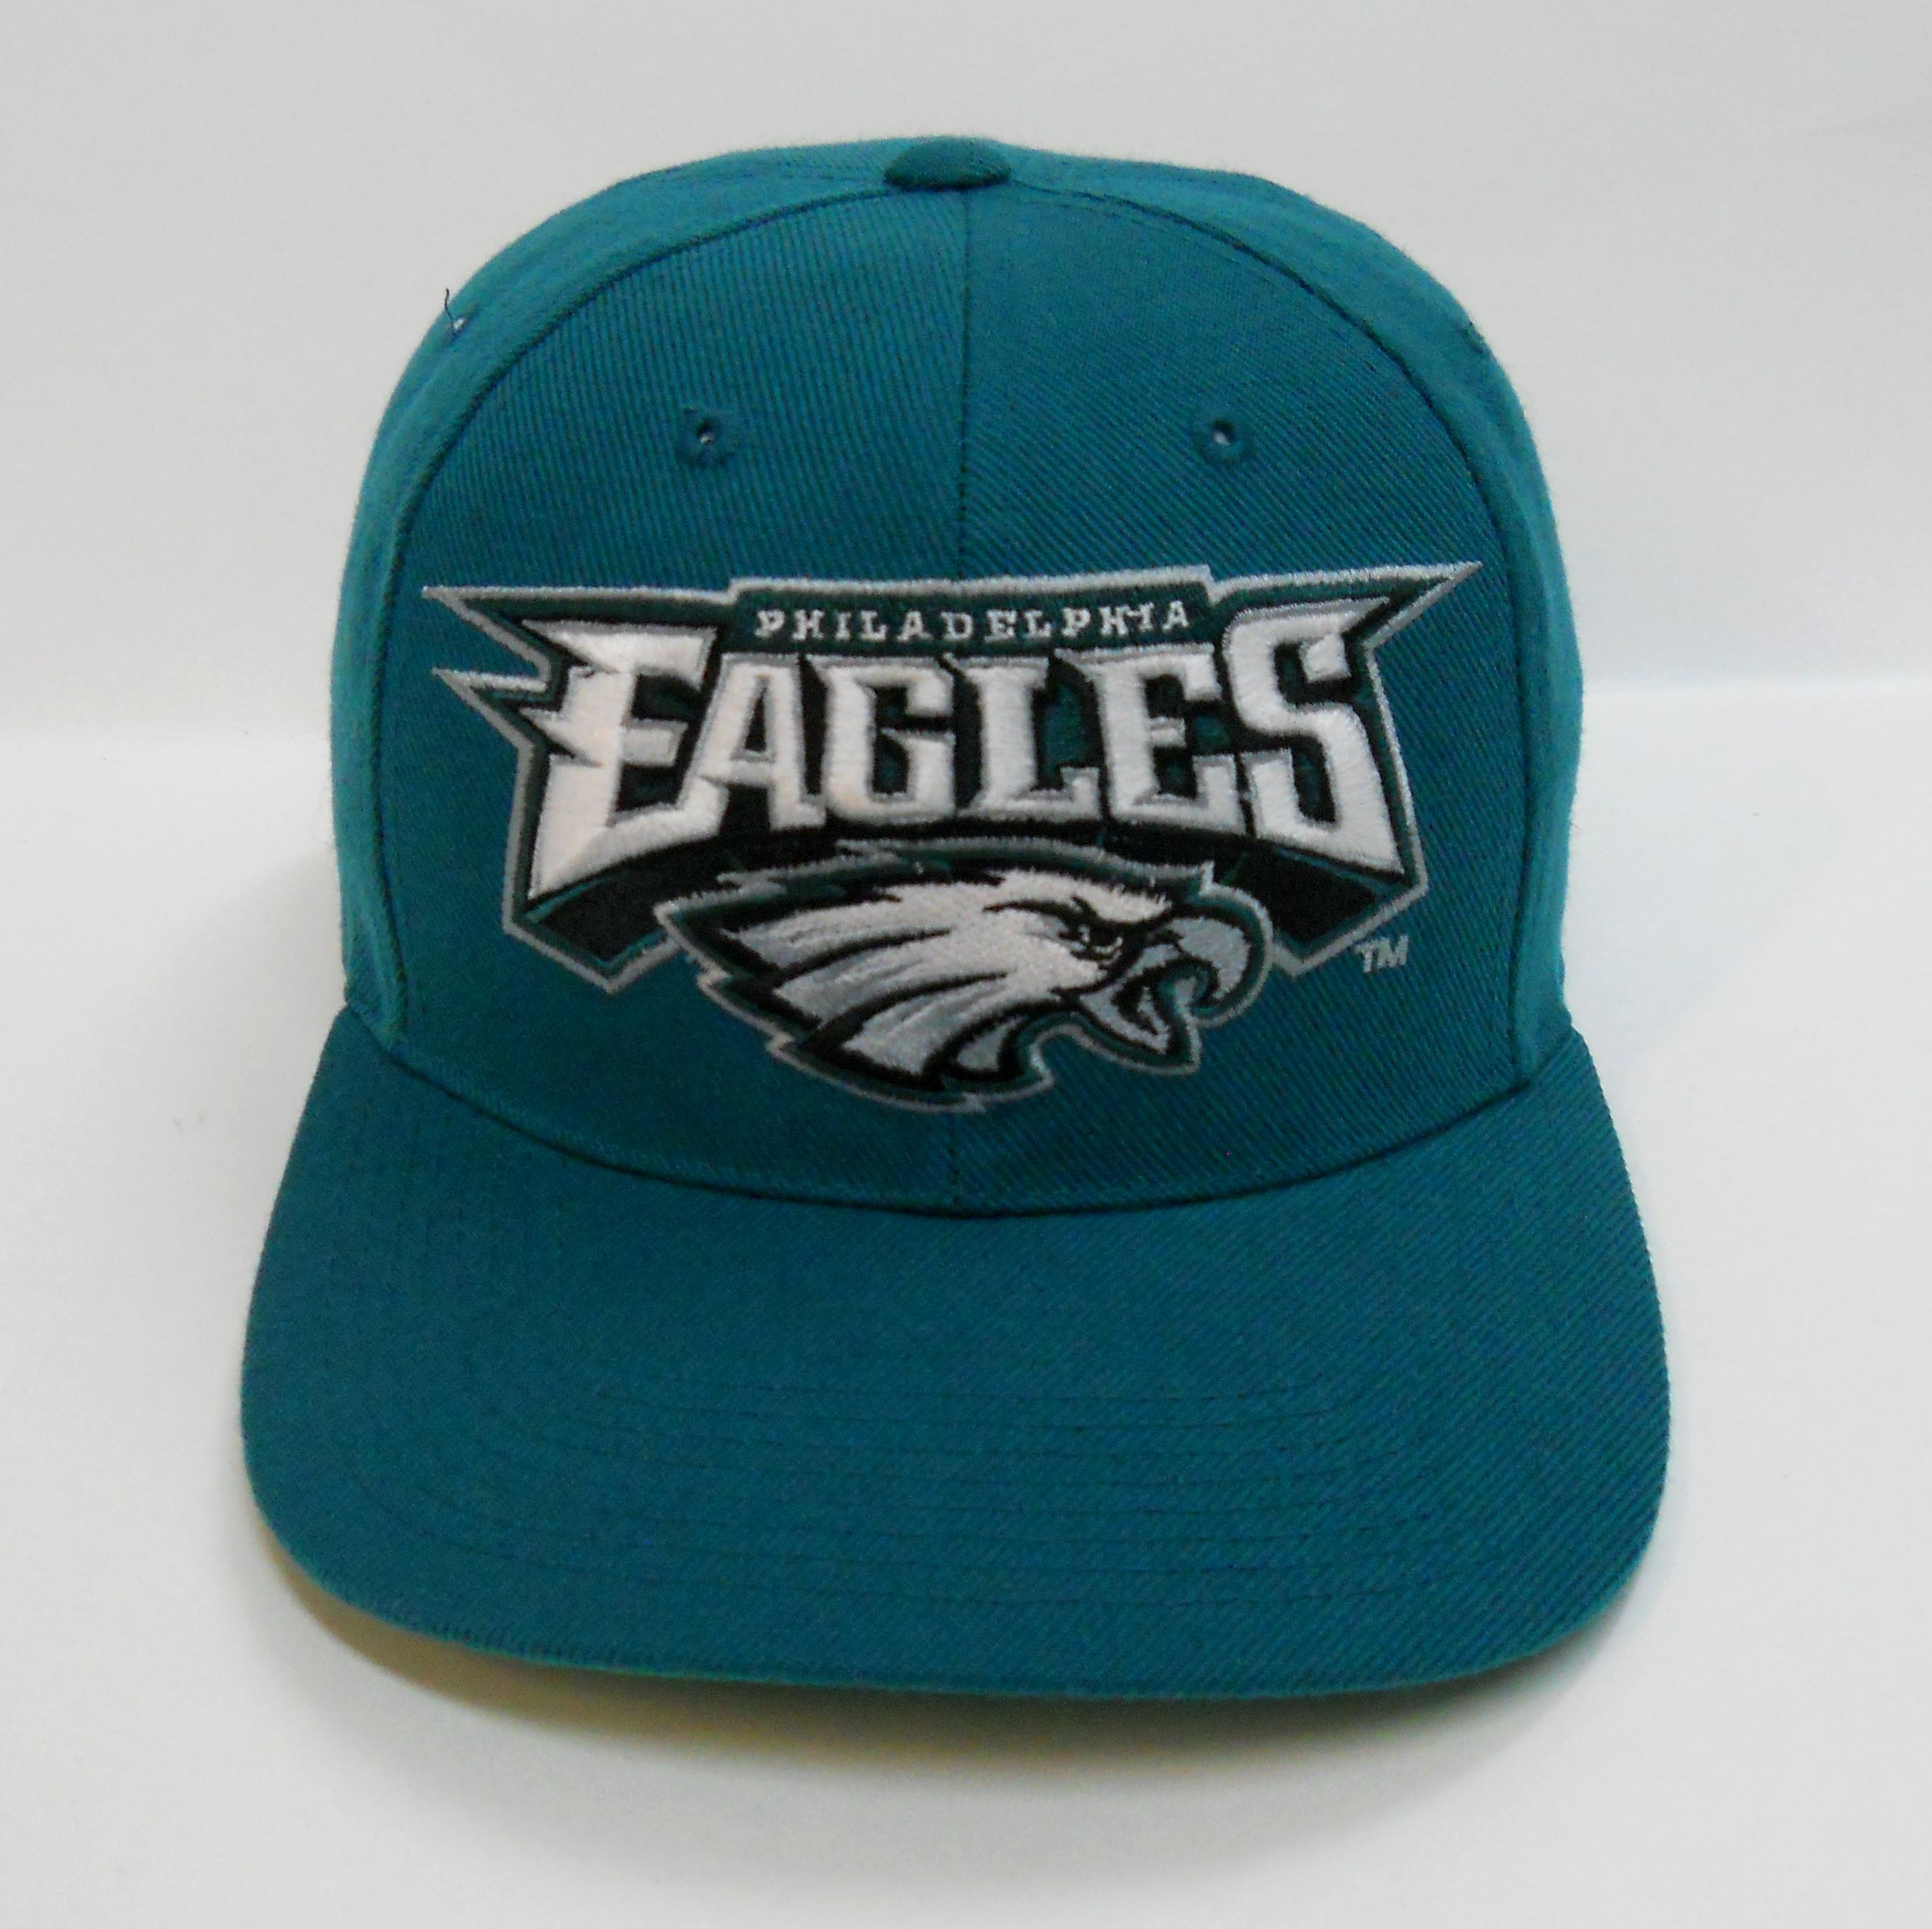 Vintage 1997 Philadelphia Eagles Snapback by Sports Specialties. OSFM  (pre-owned) f5b0d41af139